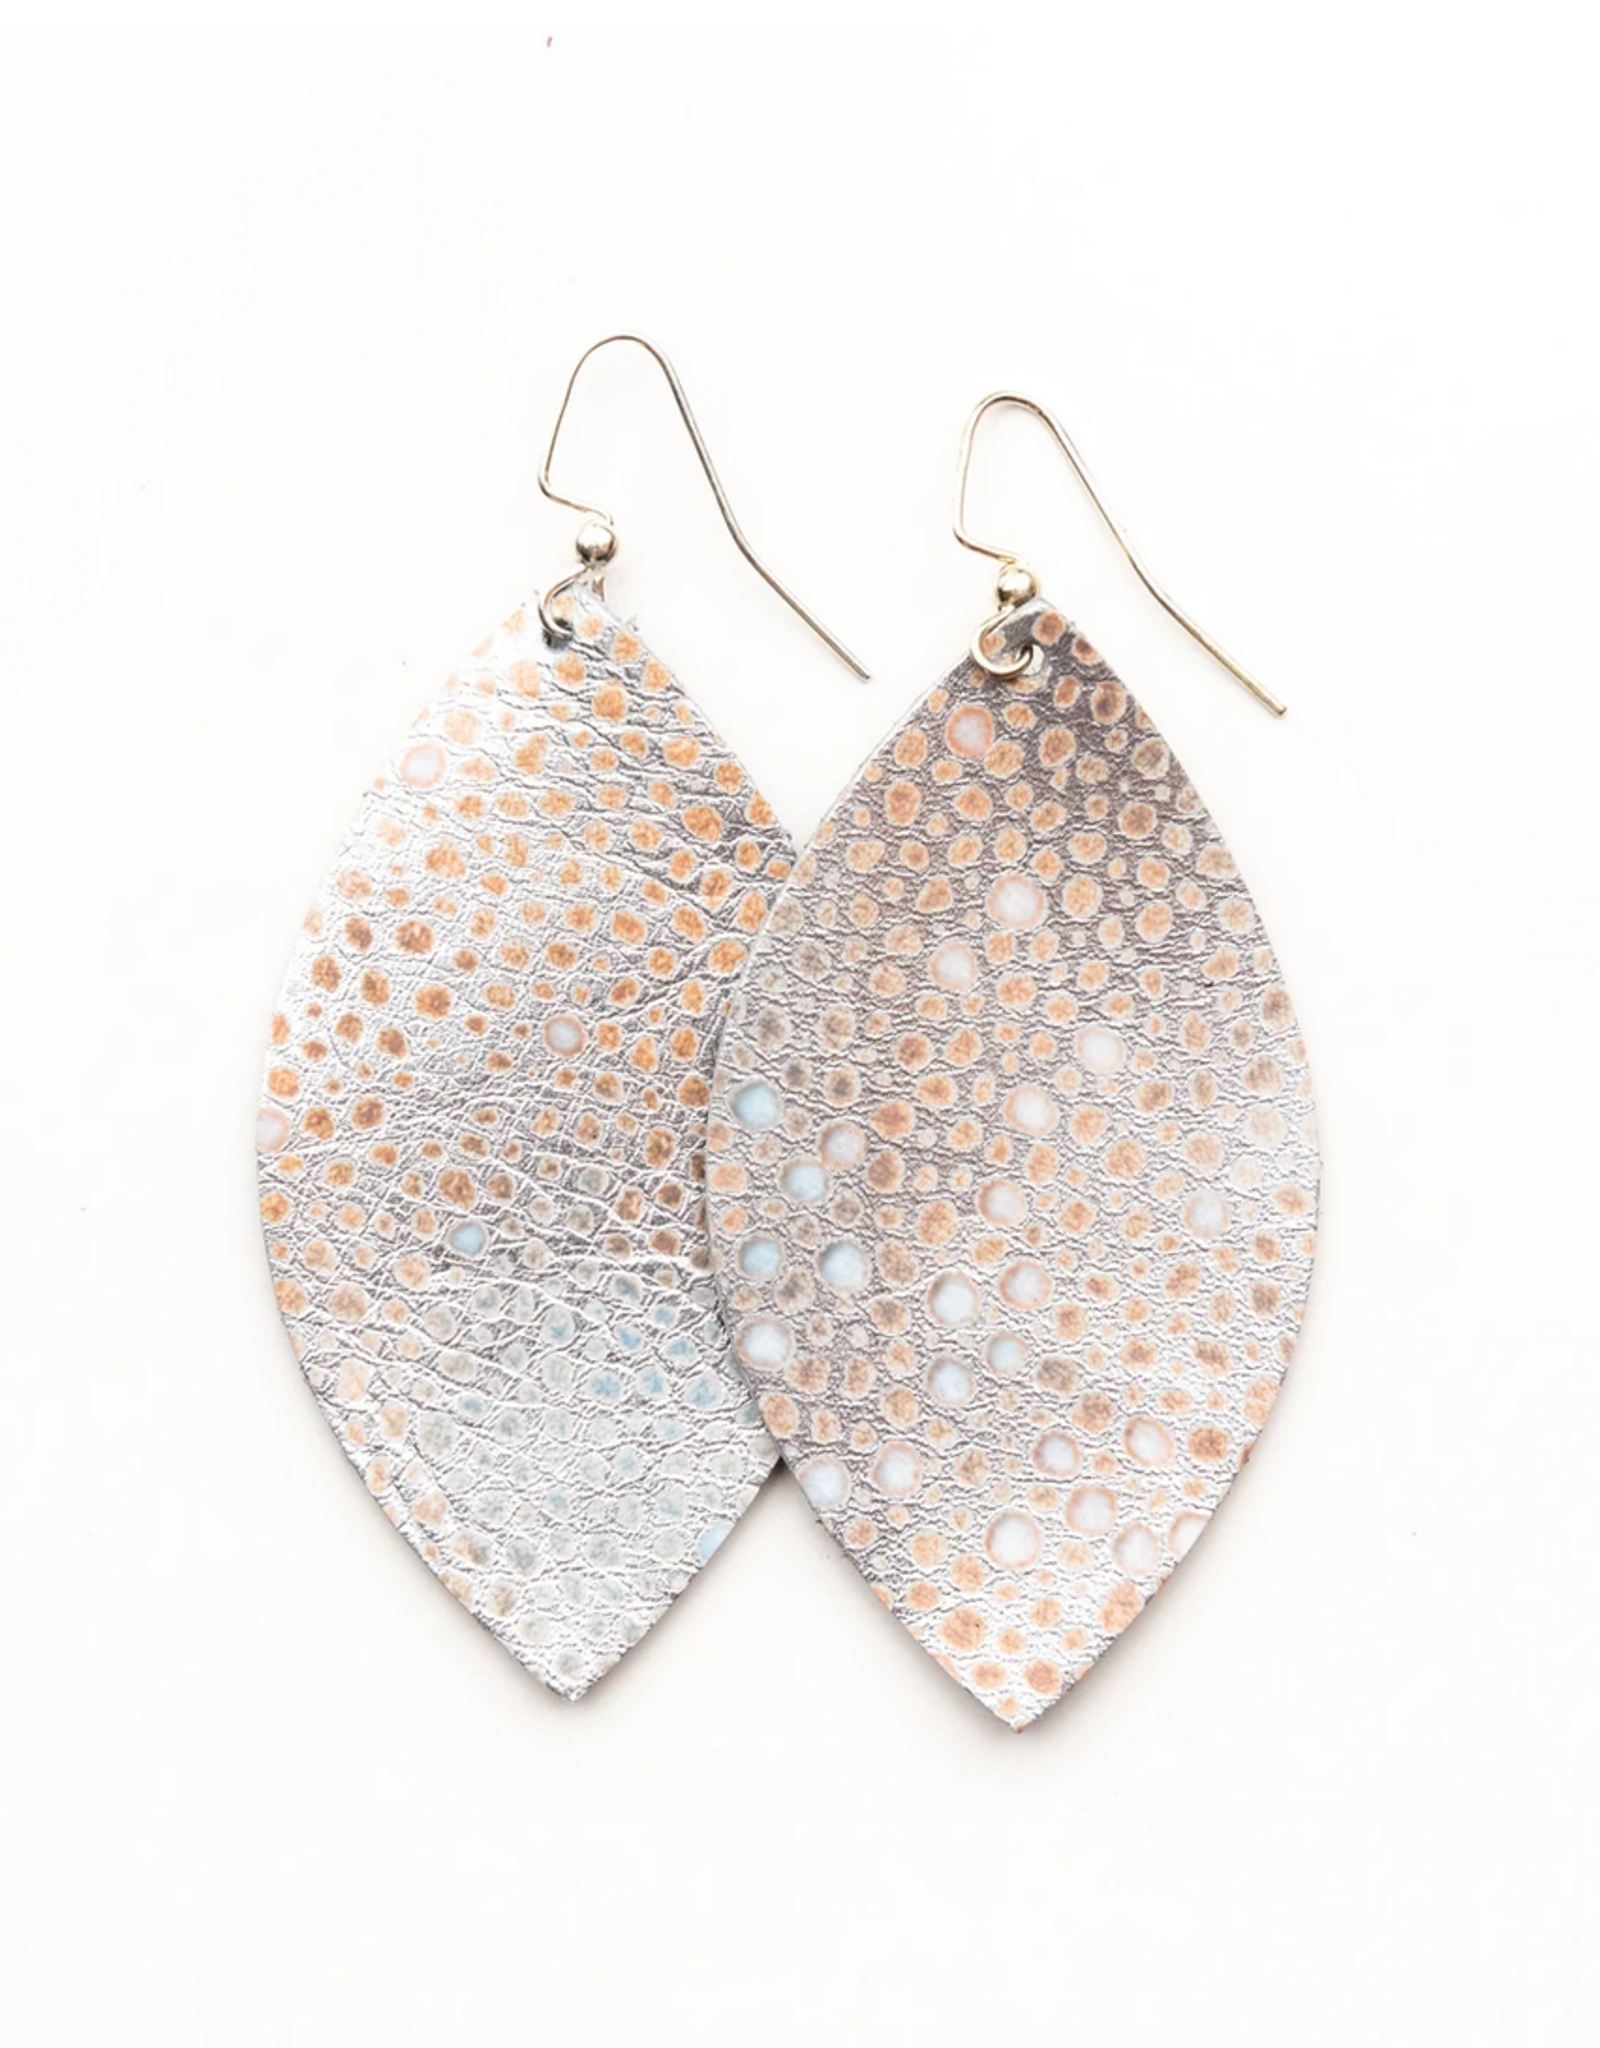 Keva - Earings Silver Metallic Speckled